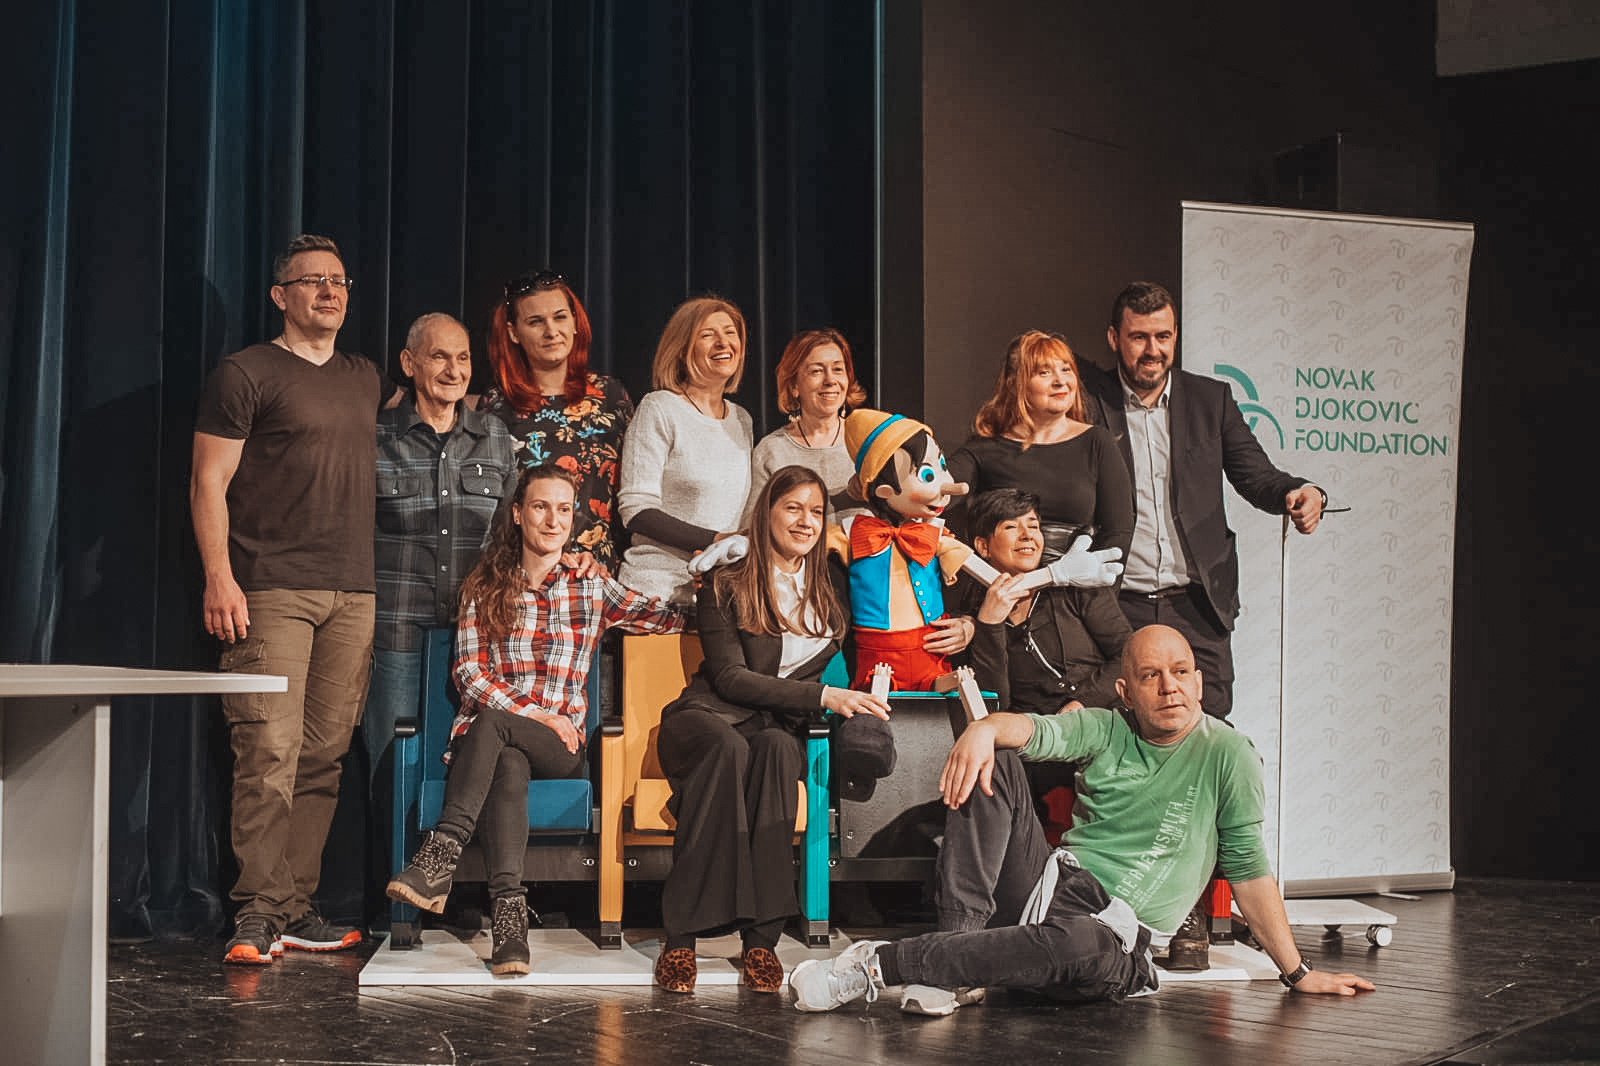 """""""Theatre is a unique experience for children, and adults have to act responsibly towards the children who otherwise may never go to the theatre without their assistance. This is why we are happy we can make children dream and believe in their dreams through this donation, as this is the only way for them to achieve big goals,"""" says Maja Kremic, our National director."""